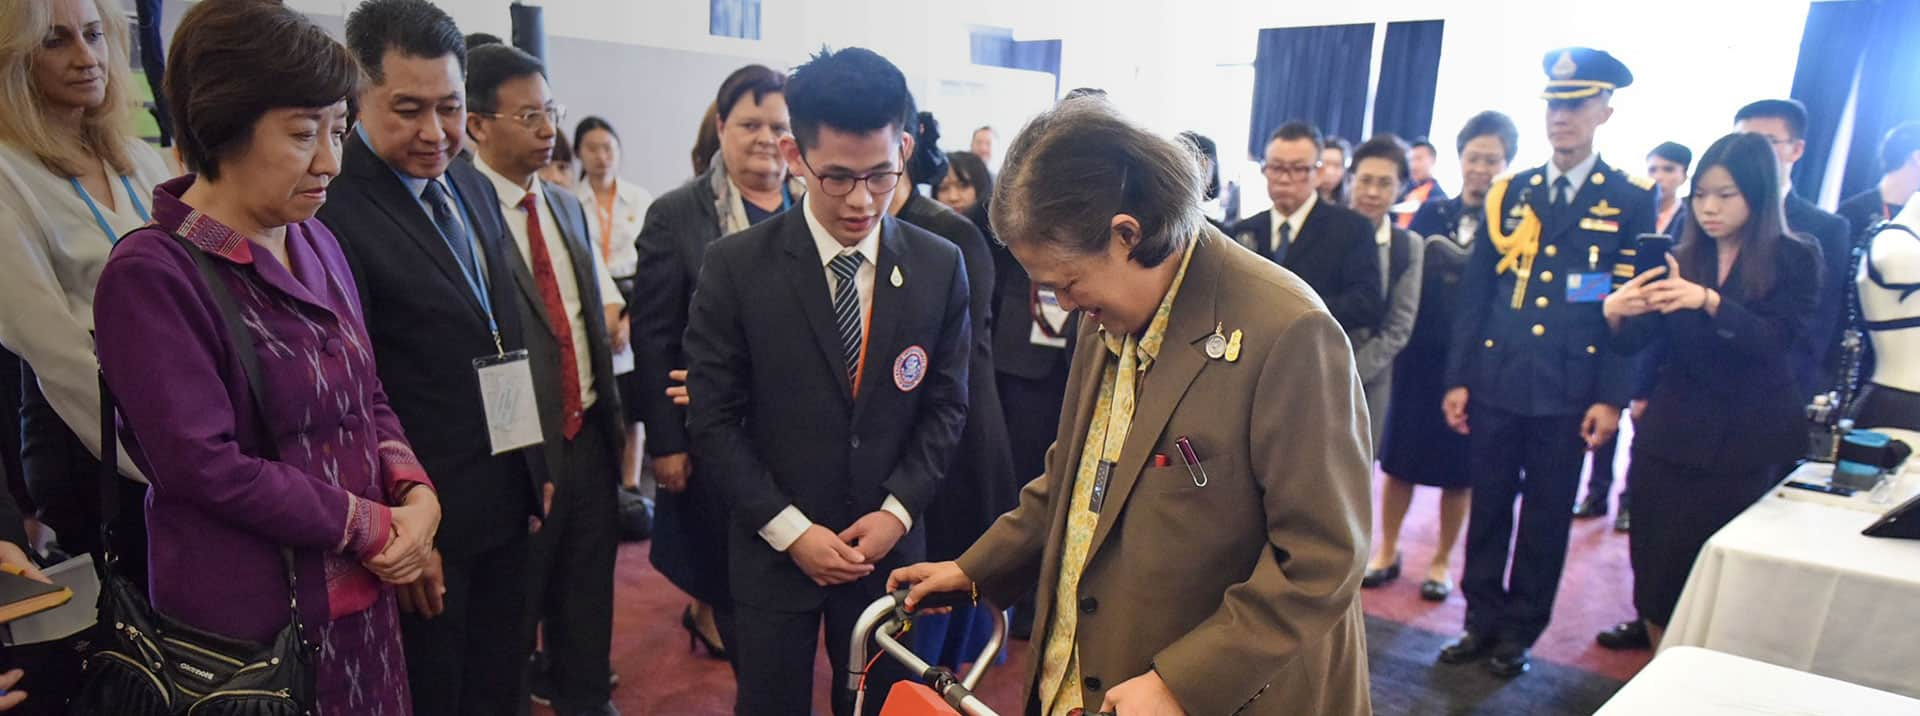 285_FeatImage_1920x716 RIS Student Presents Invention to HRH Princess Sirindhorn